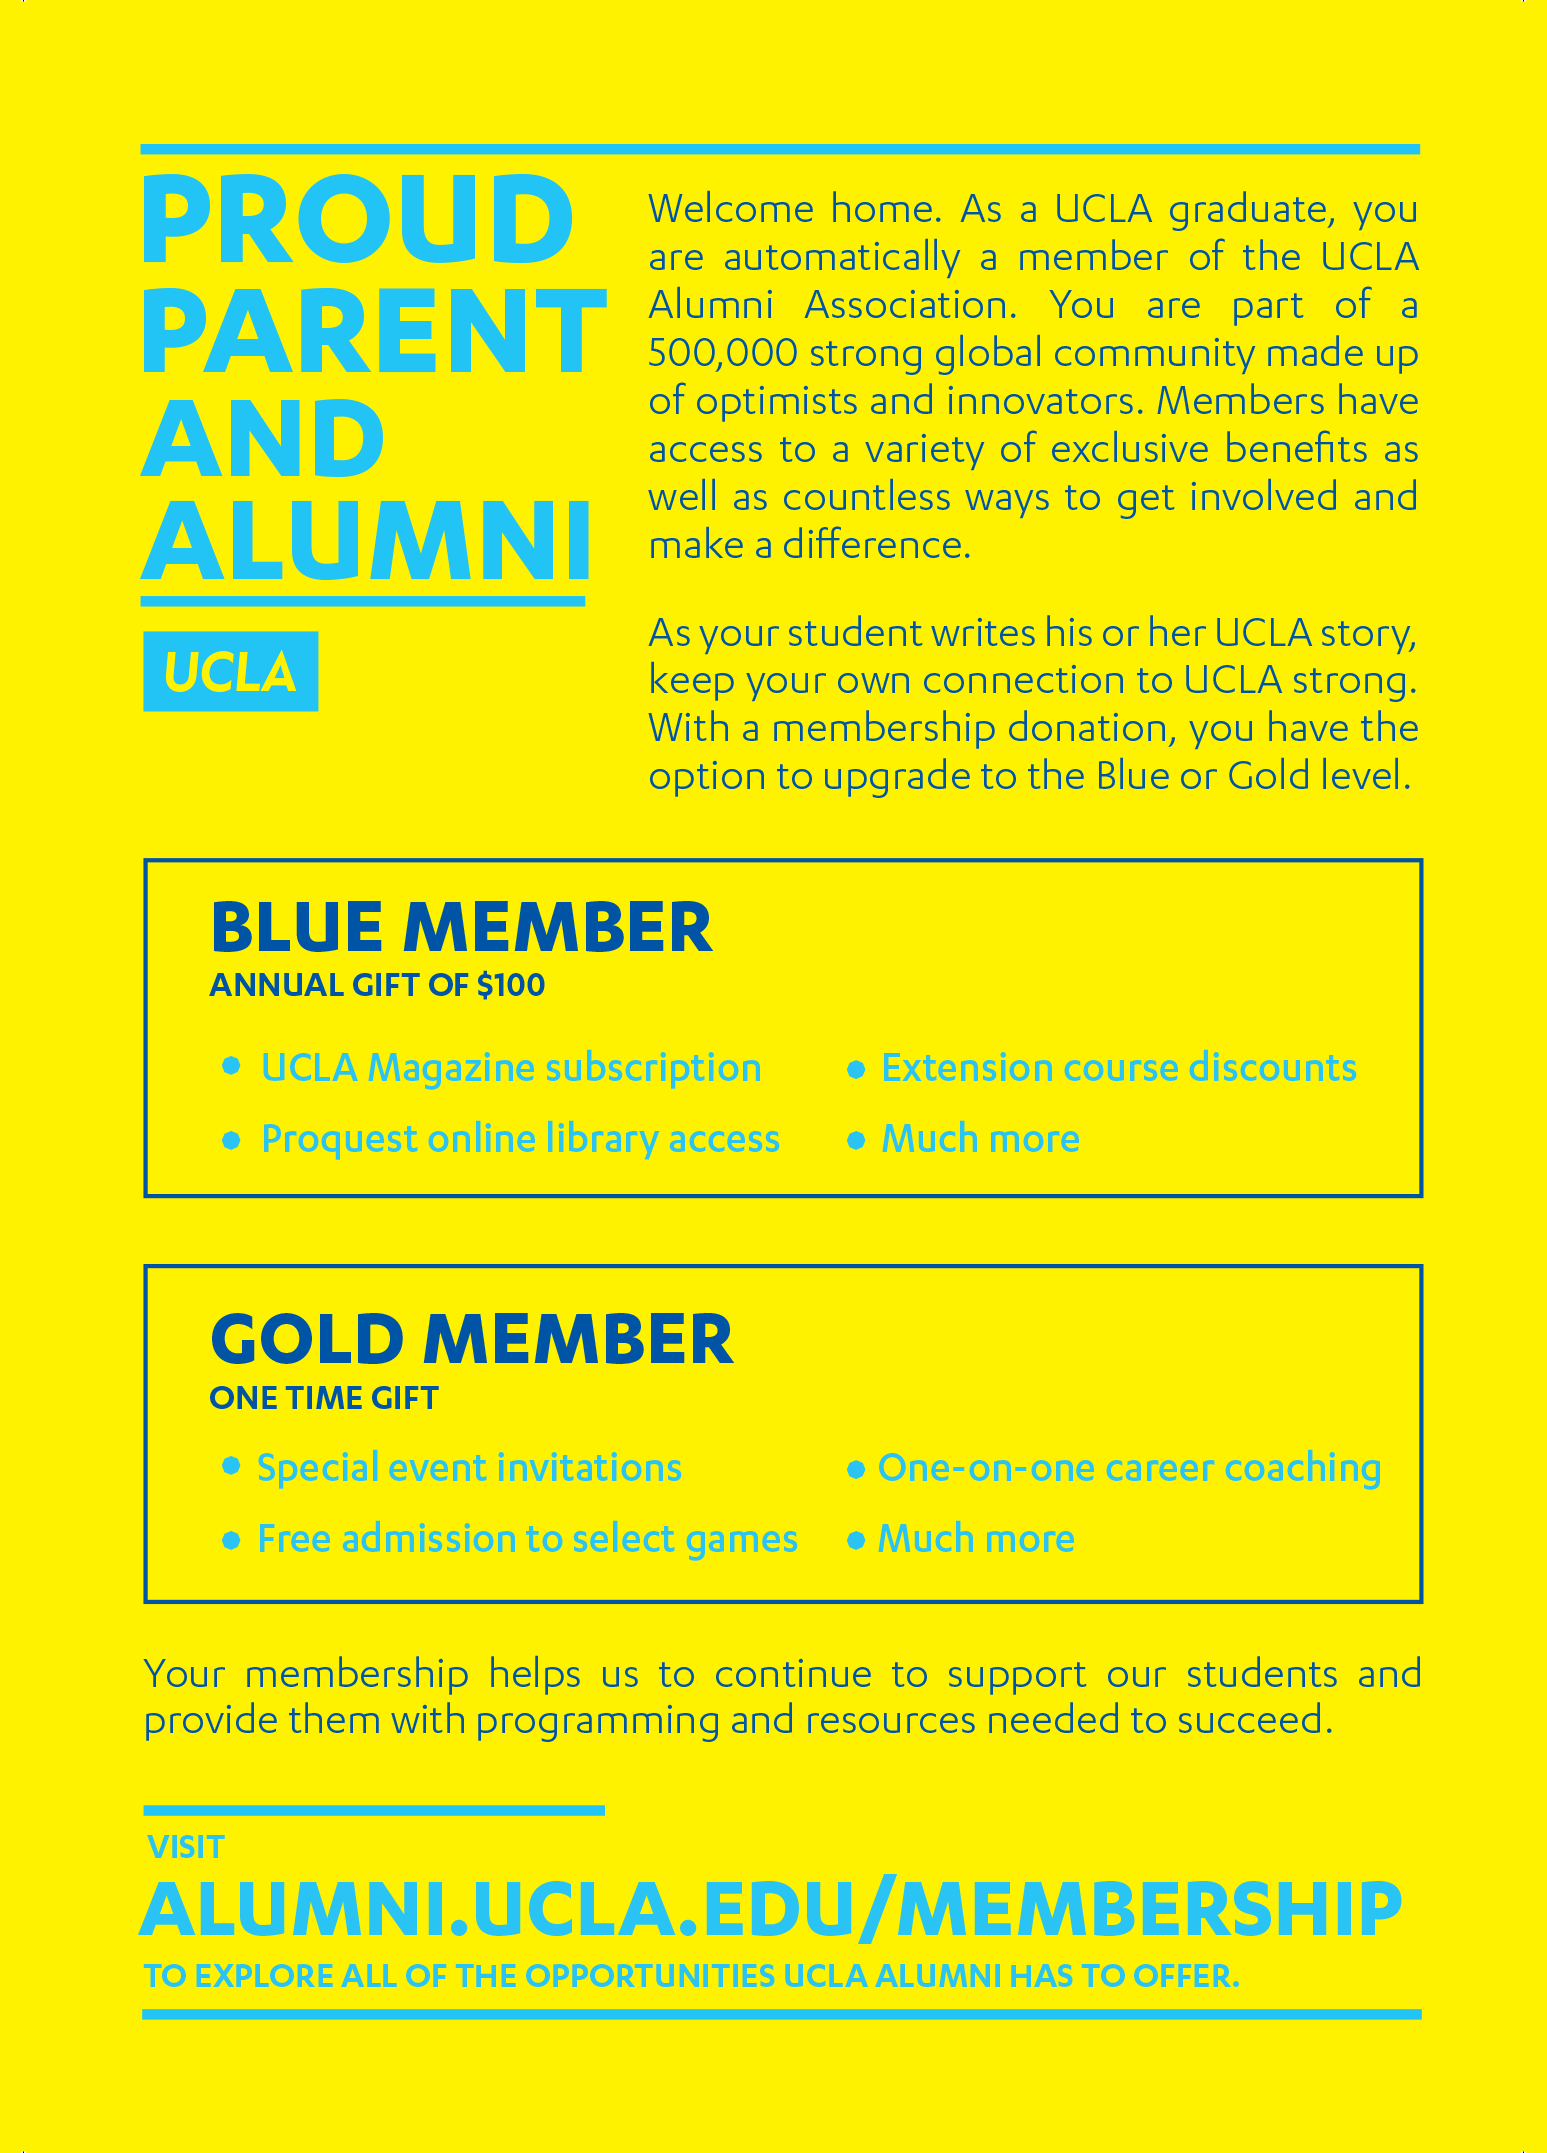 A flyer distributed to parents at a number of events. A pin with the same language was attached to the upper left corner for parents to proudly wear throughout the day.